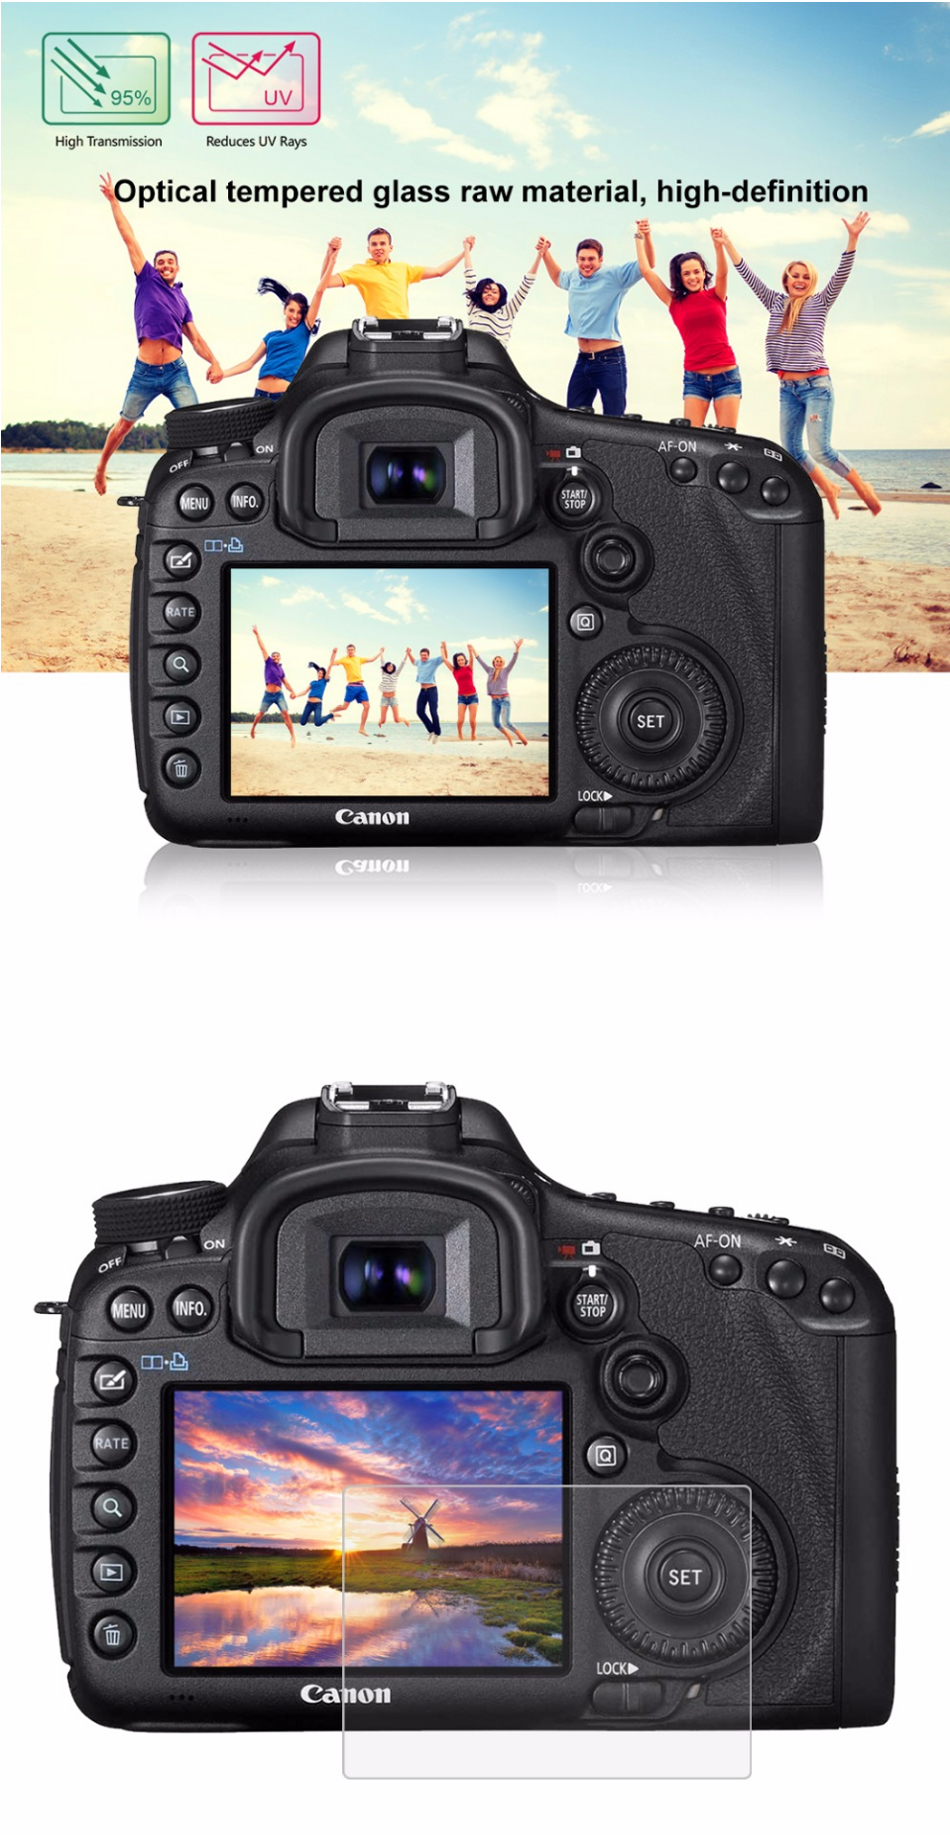 PULUZ PU5501 2.5D Curved Edge 9H Surface Hardness Tempered Glass Screen Protector for Canon 5D Mark III Camera